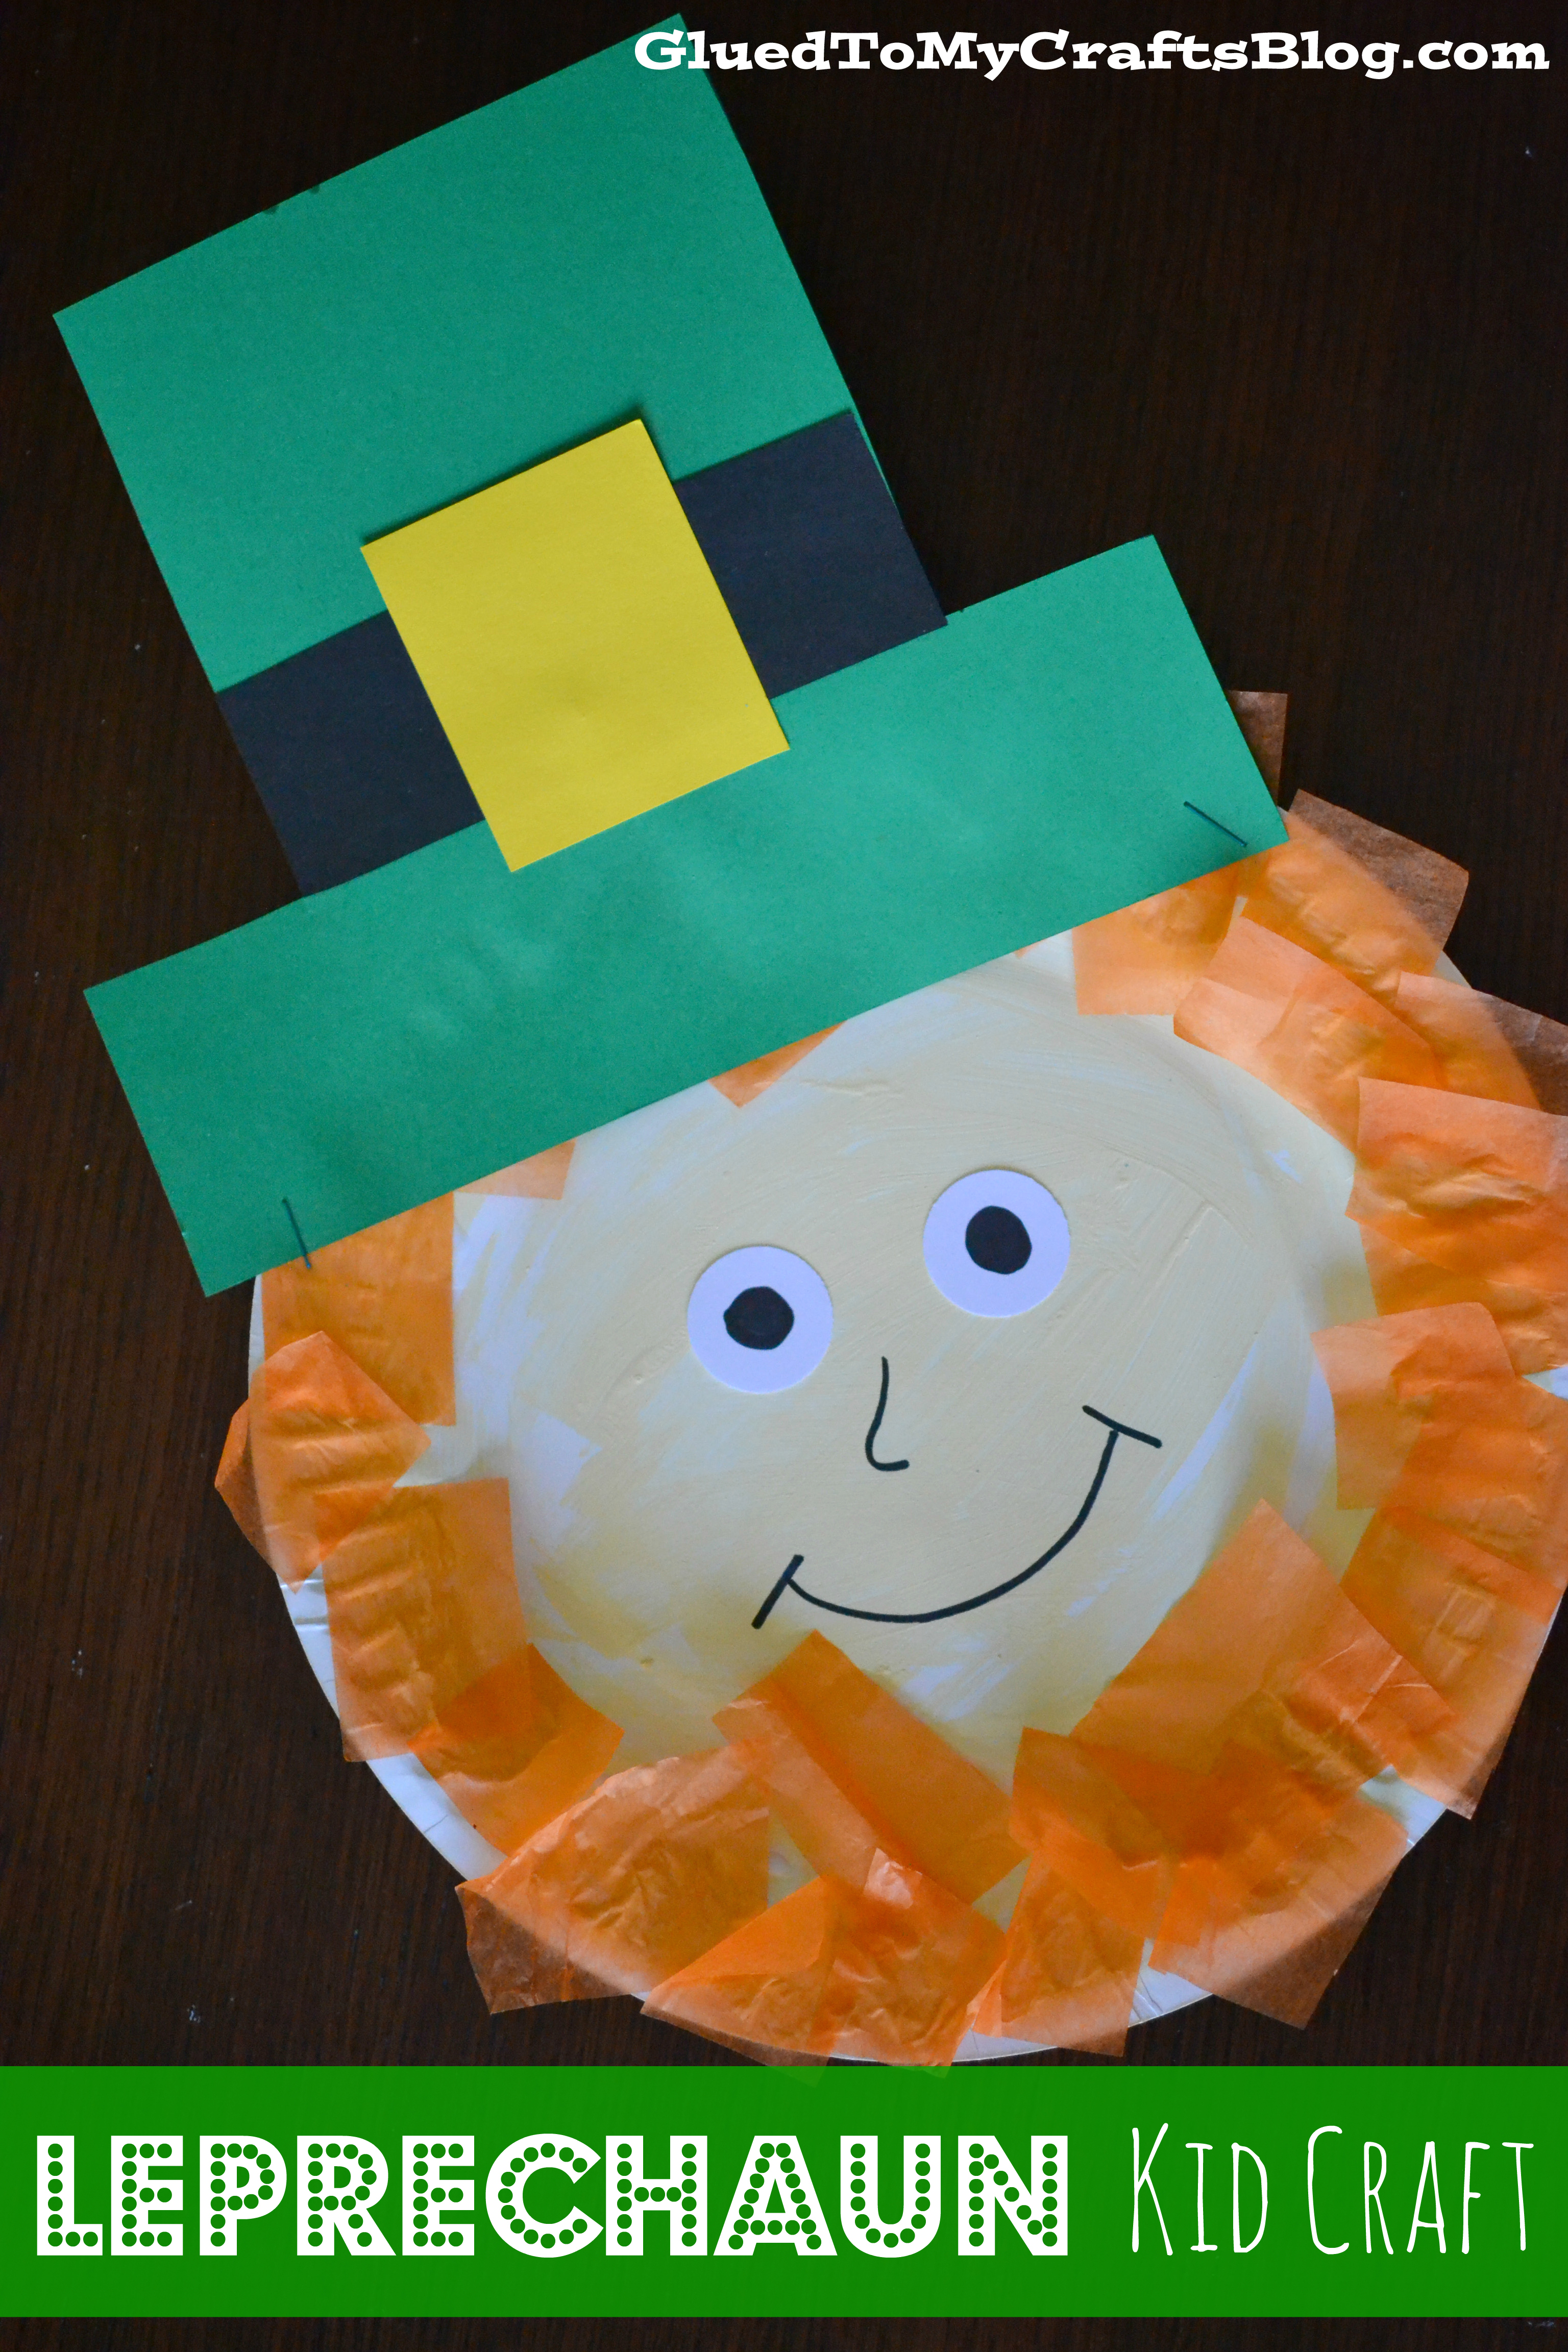 St patricks day preschool crafts - Leprechan Kid Crafts For St Patrick S Day